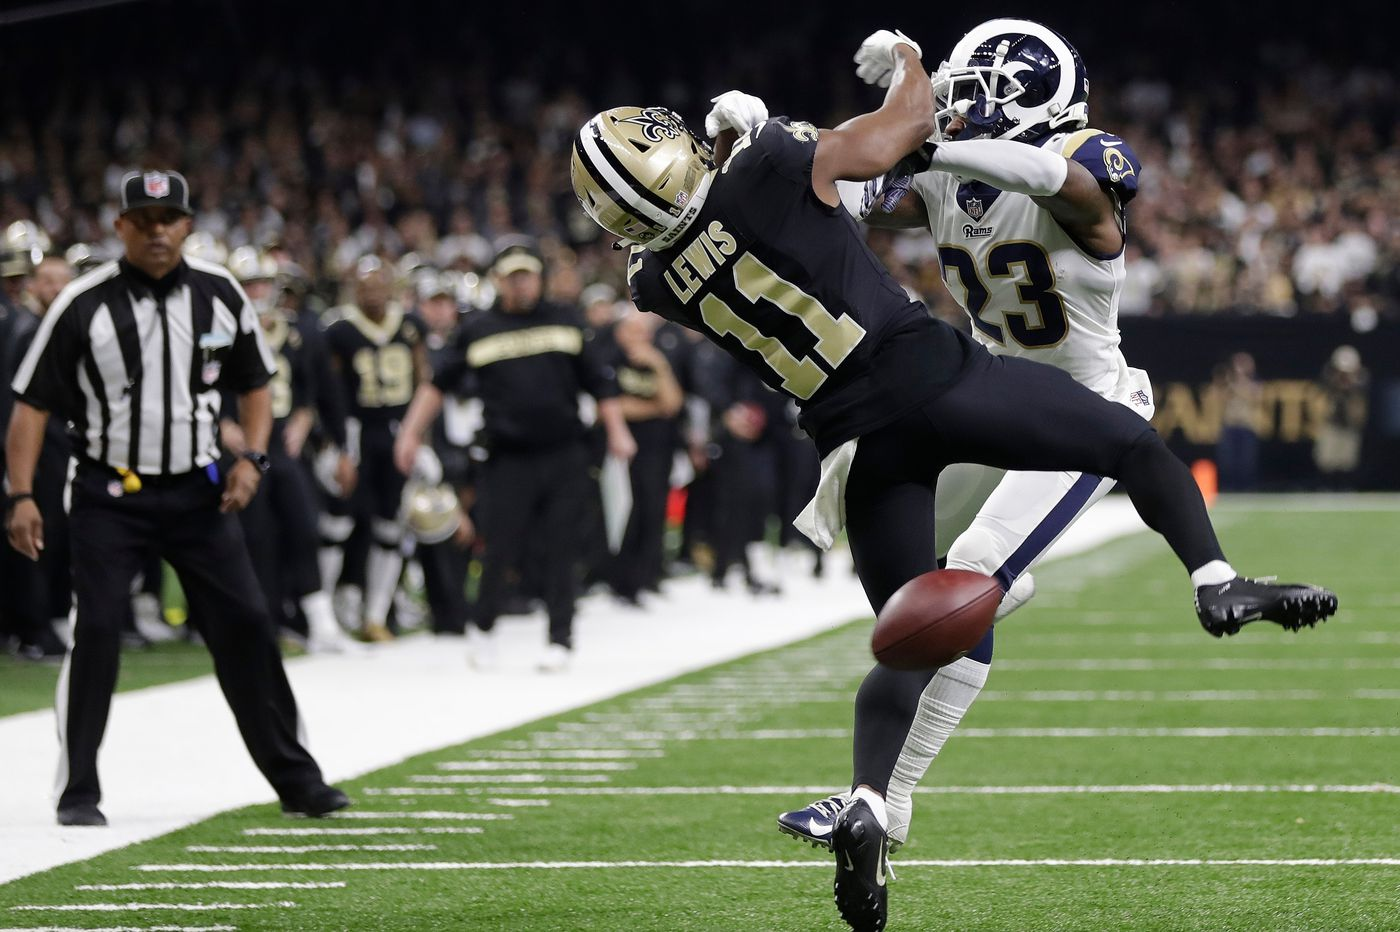 Wanna fix NFL officiating? Fine. Just be prepared for unintended and unwanted consequences. | Mike Sielski